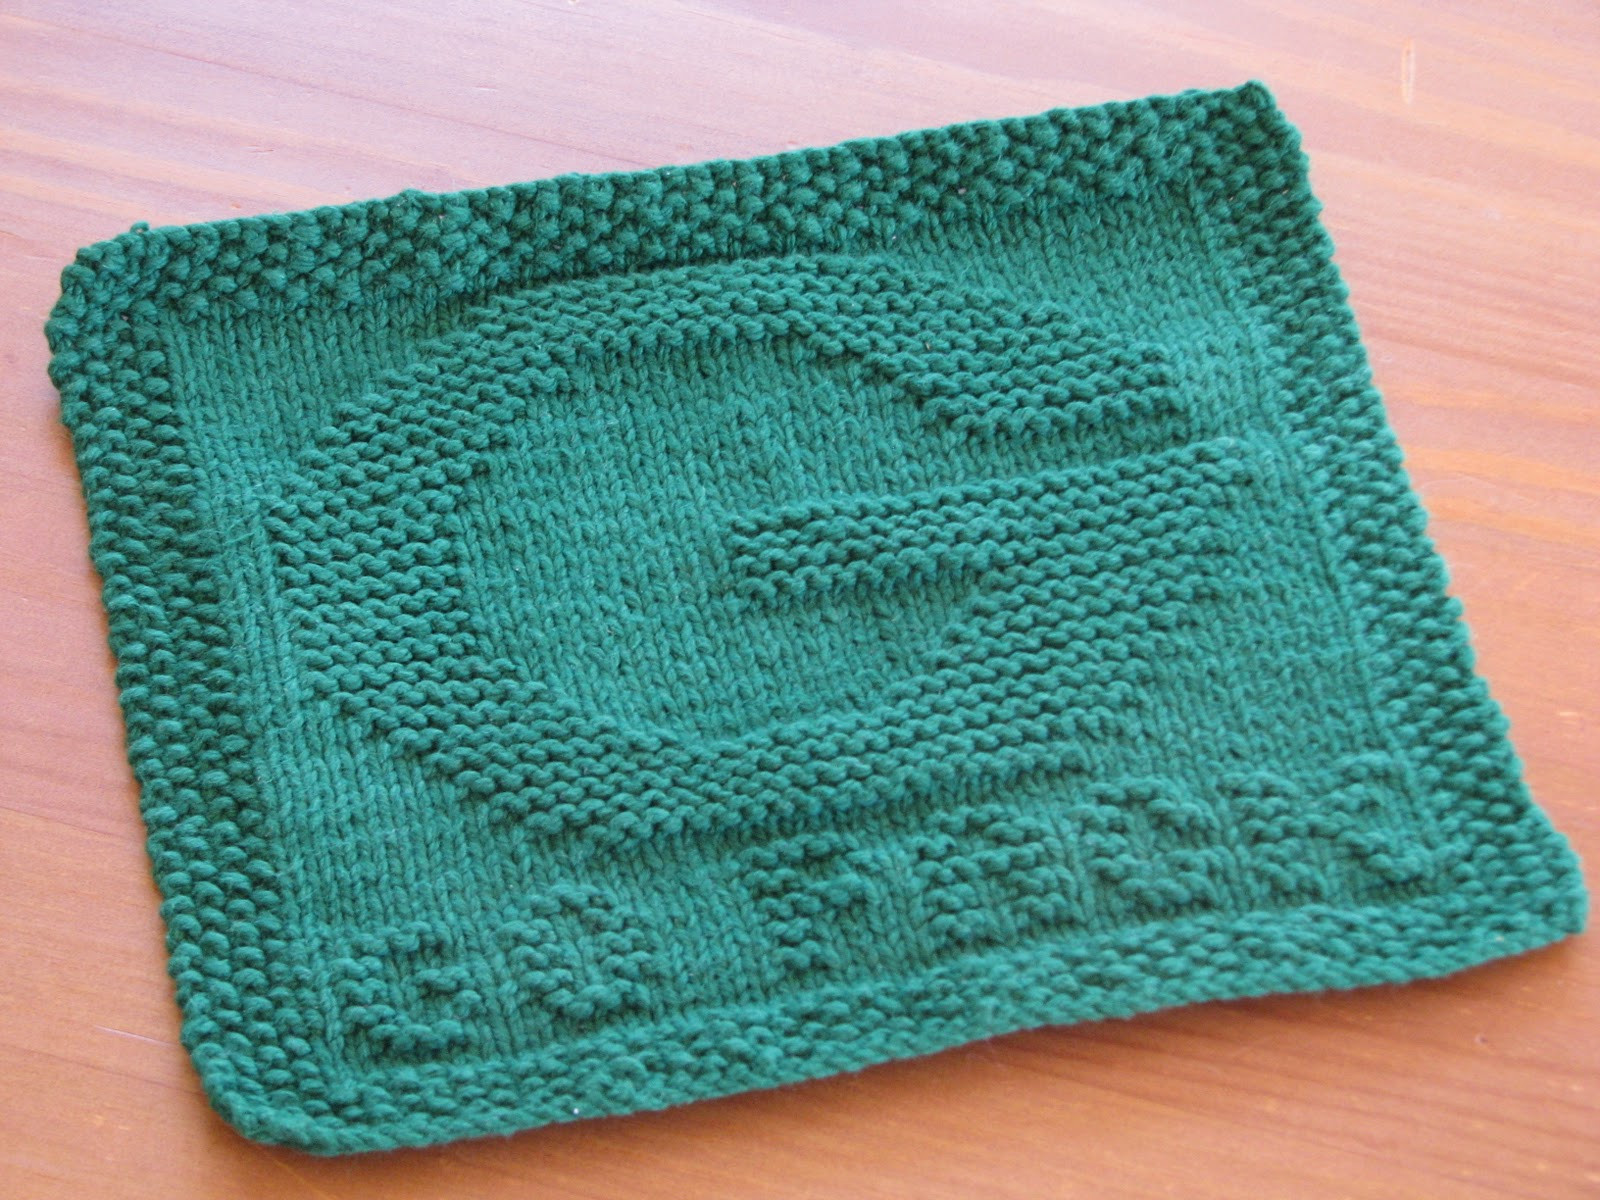 Knitted Dishcloth Inspirational E Crafty Mama Go Pack Green Bay Packers Dishcloth Of Gorgeous 46 Photos Knitted Dishcloth